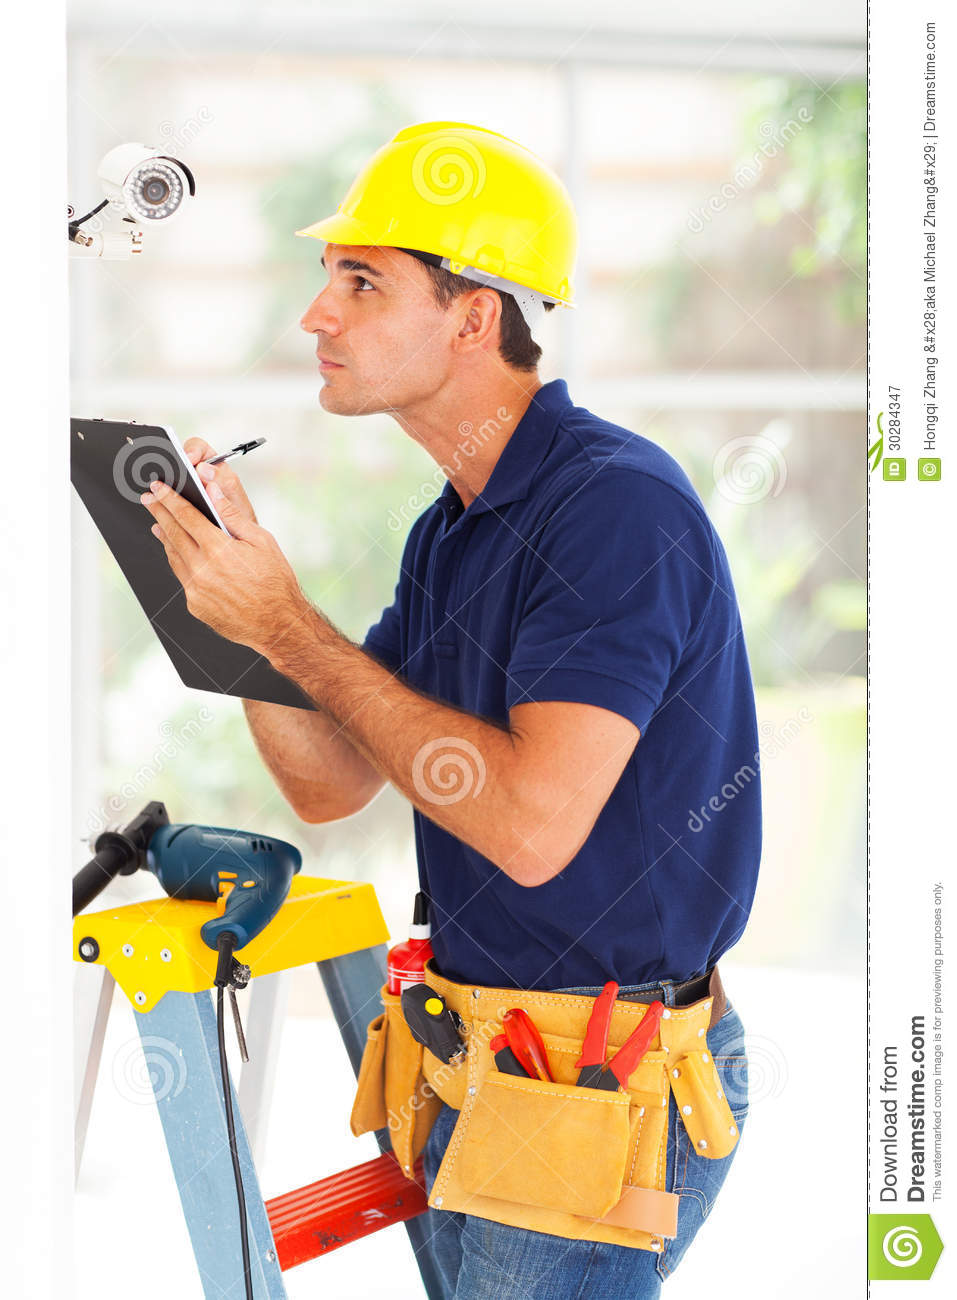 Cctv Technician Recording Stock Image Image Of Clipboard